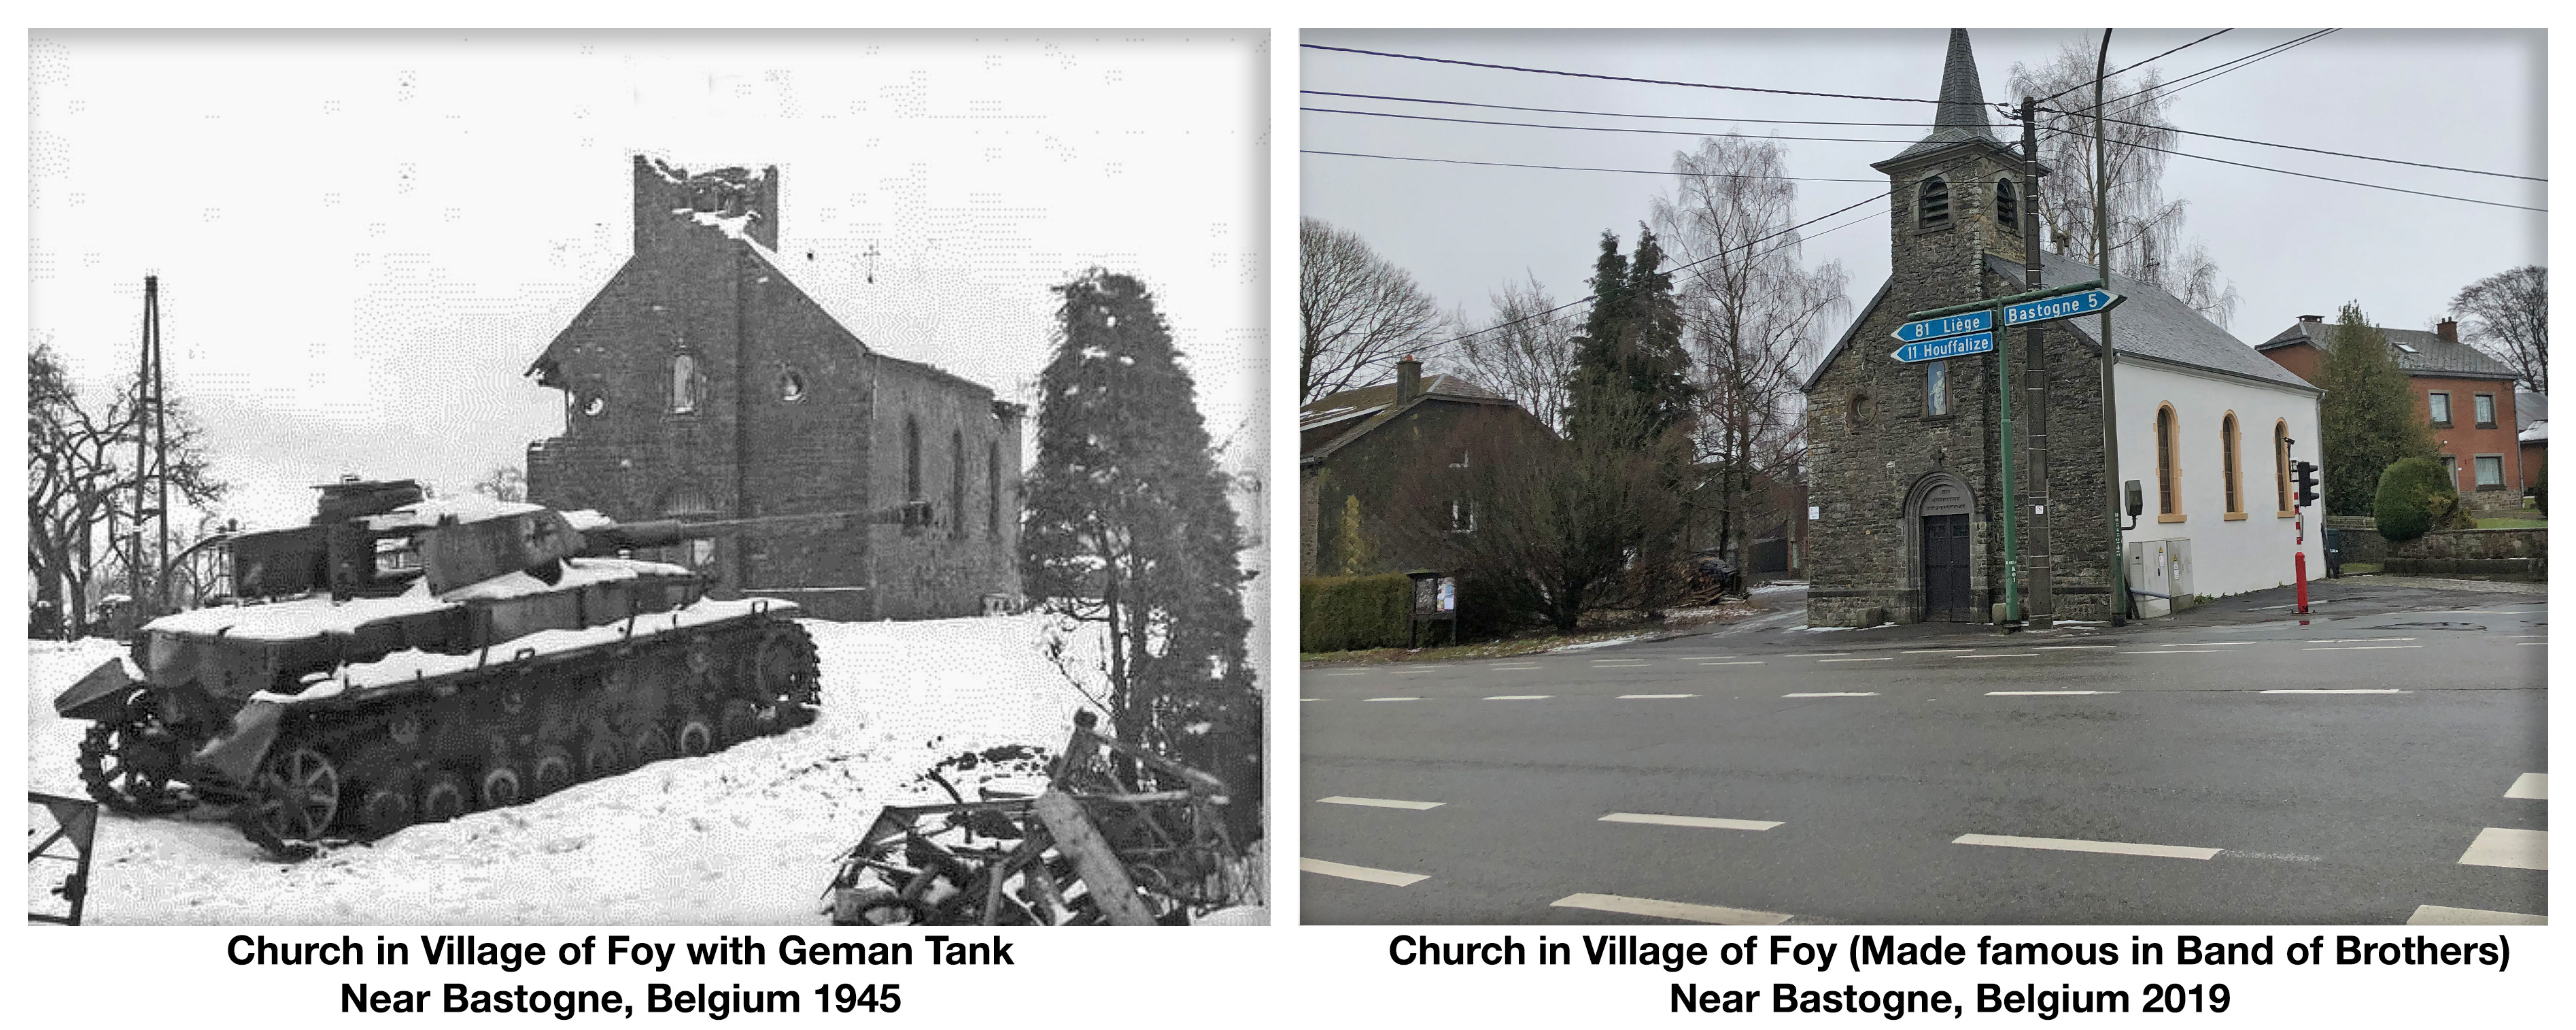 Church in Village of Foy 1945 2019 Battle of the bulge Bastogne history then and now band of brothers Stephen Ambrose